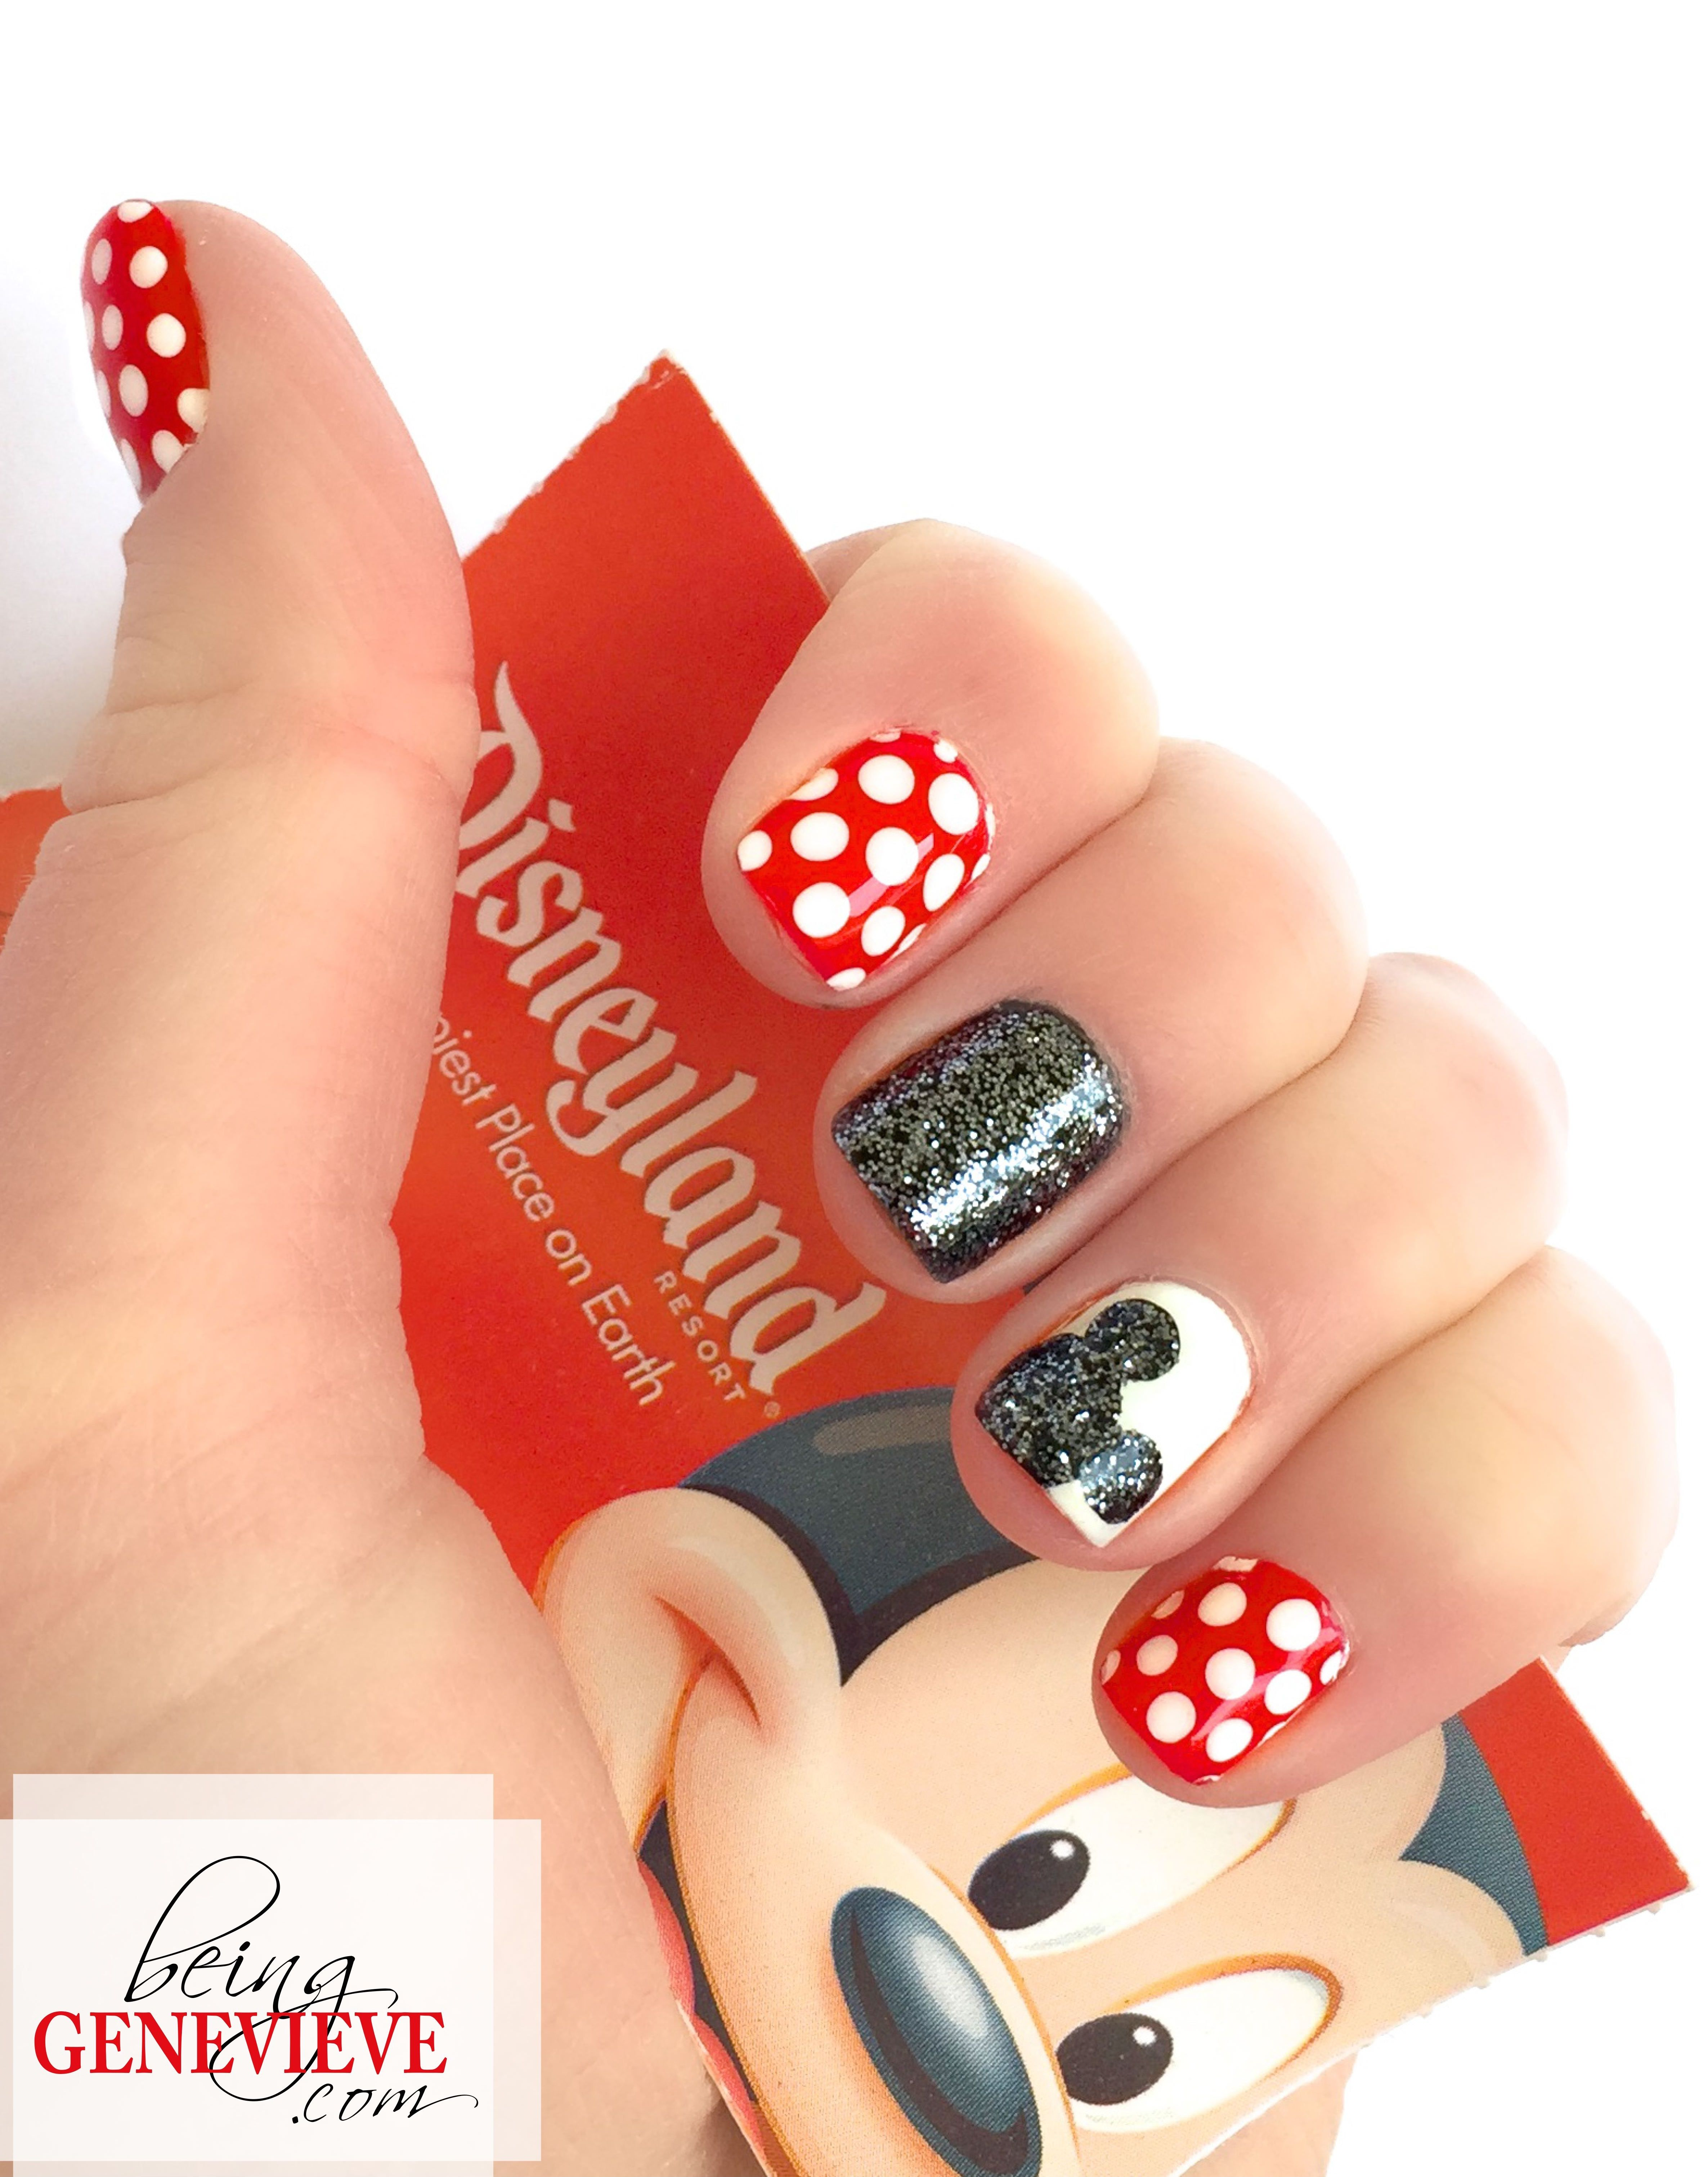 Magical Mickey   Being Genevieve  Step-by-step tutorial on how to create this cute disney nail art design. Come see how to make the Mickey silhouette sparkle. . .